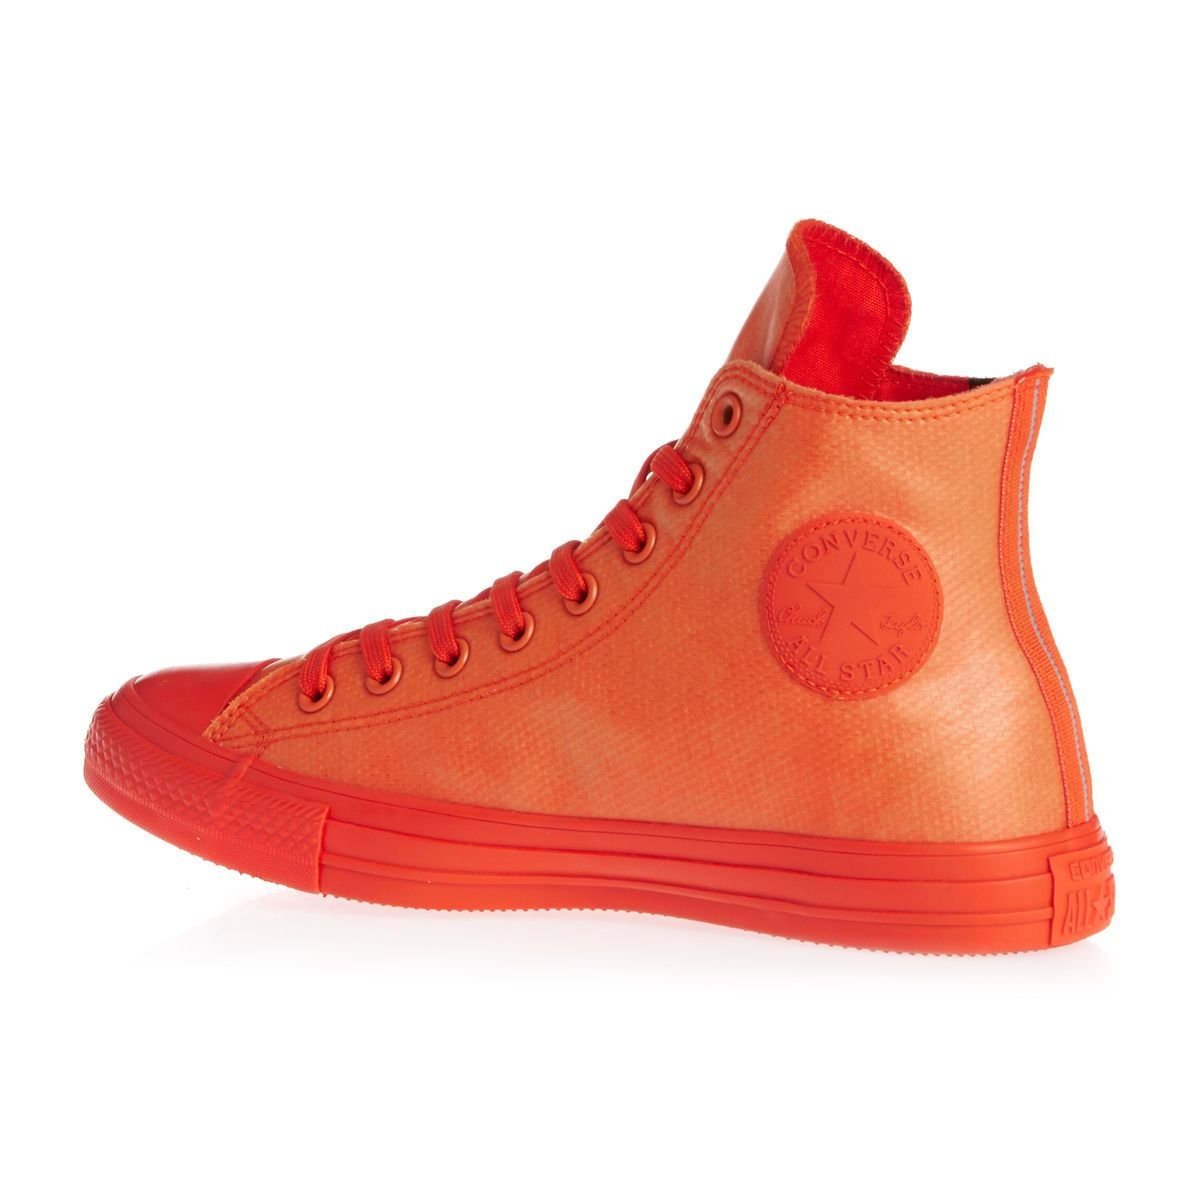 b20f044c9d446b Converse Chuck Taylor 153802C All Star Sneaker Hi  Rubber  Signal red   Amazon.co.uk  Shoes   Bags